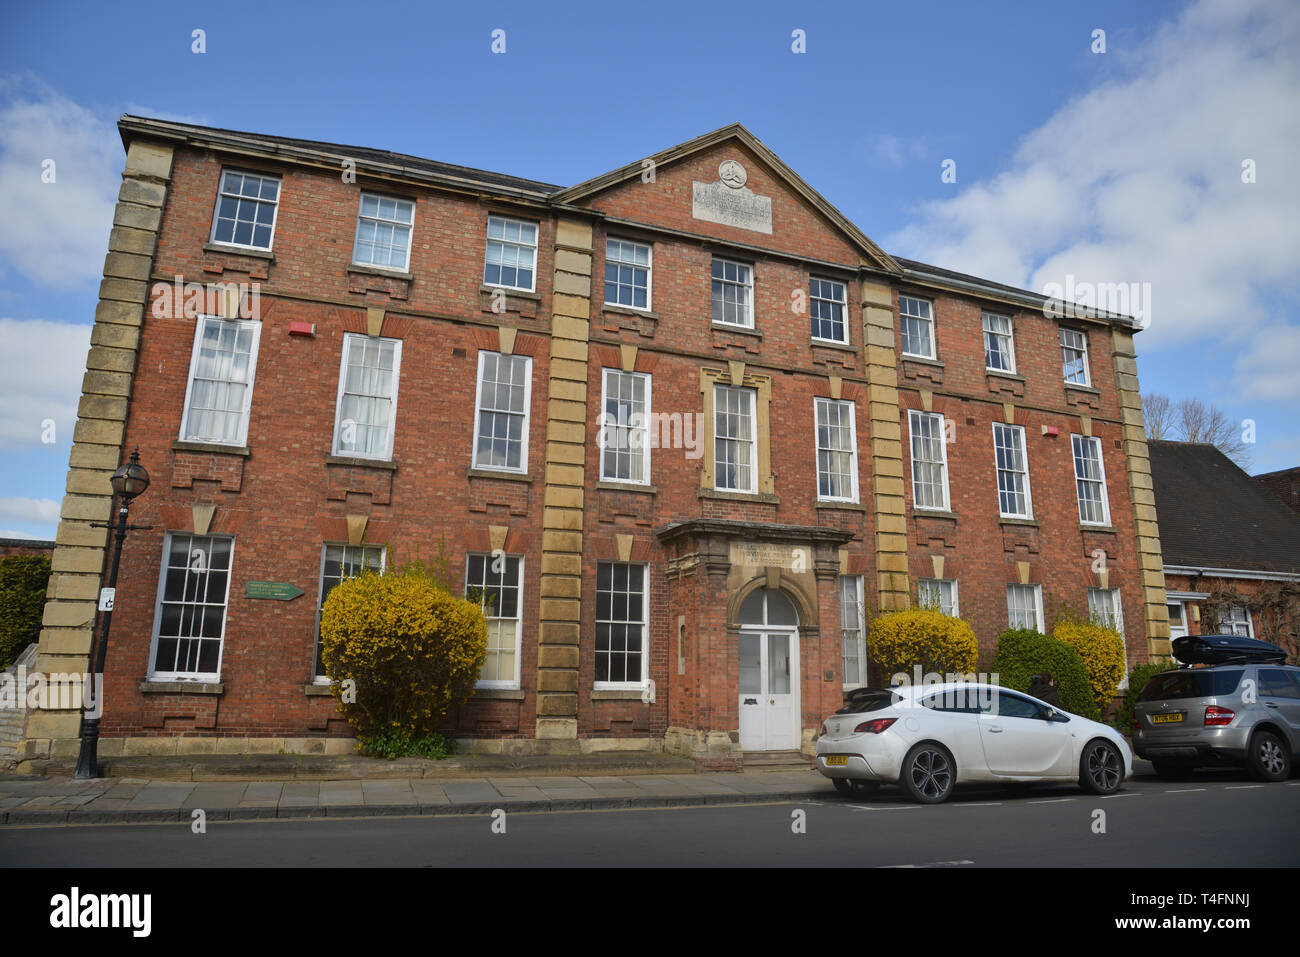 Former Trinity College School founded in 1870, a Grade II Listed Building on Church Street, Stratford upon Avon, Warwickshire Stock Photo